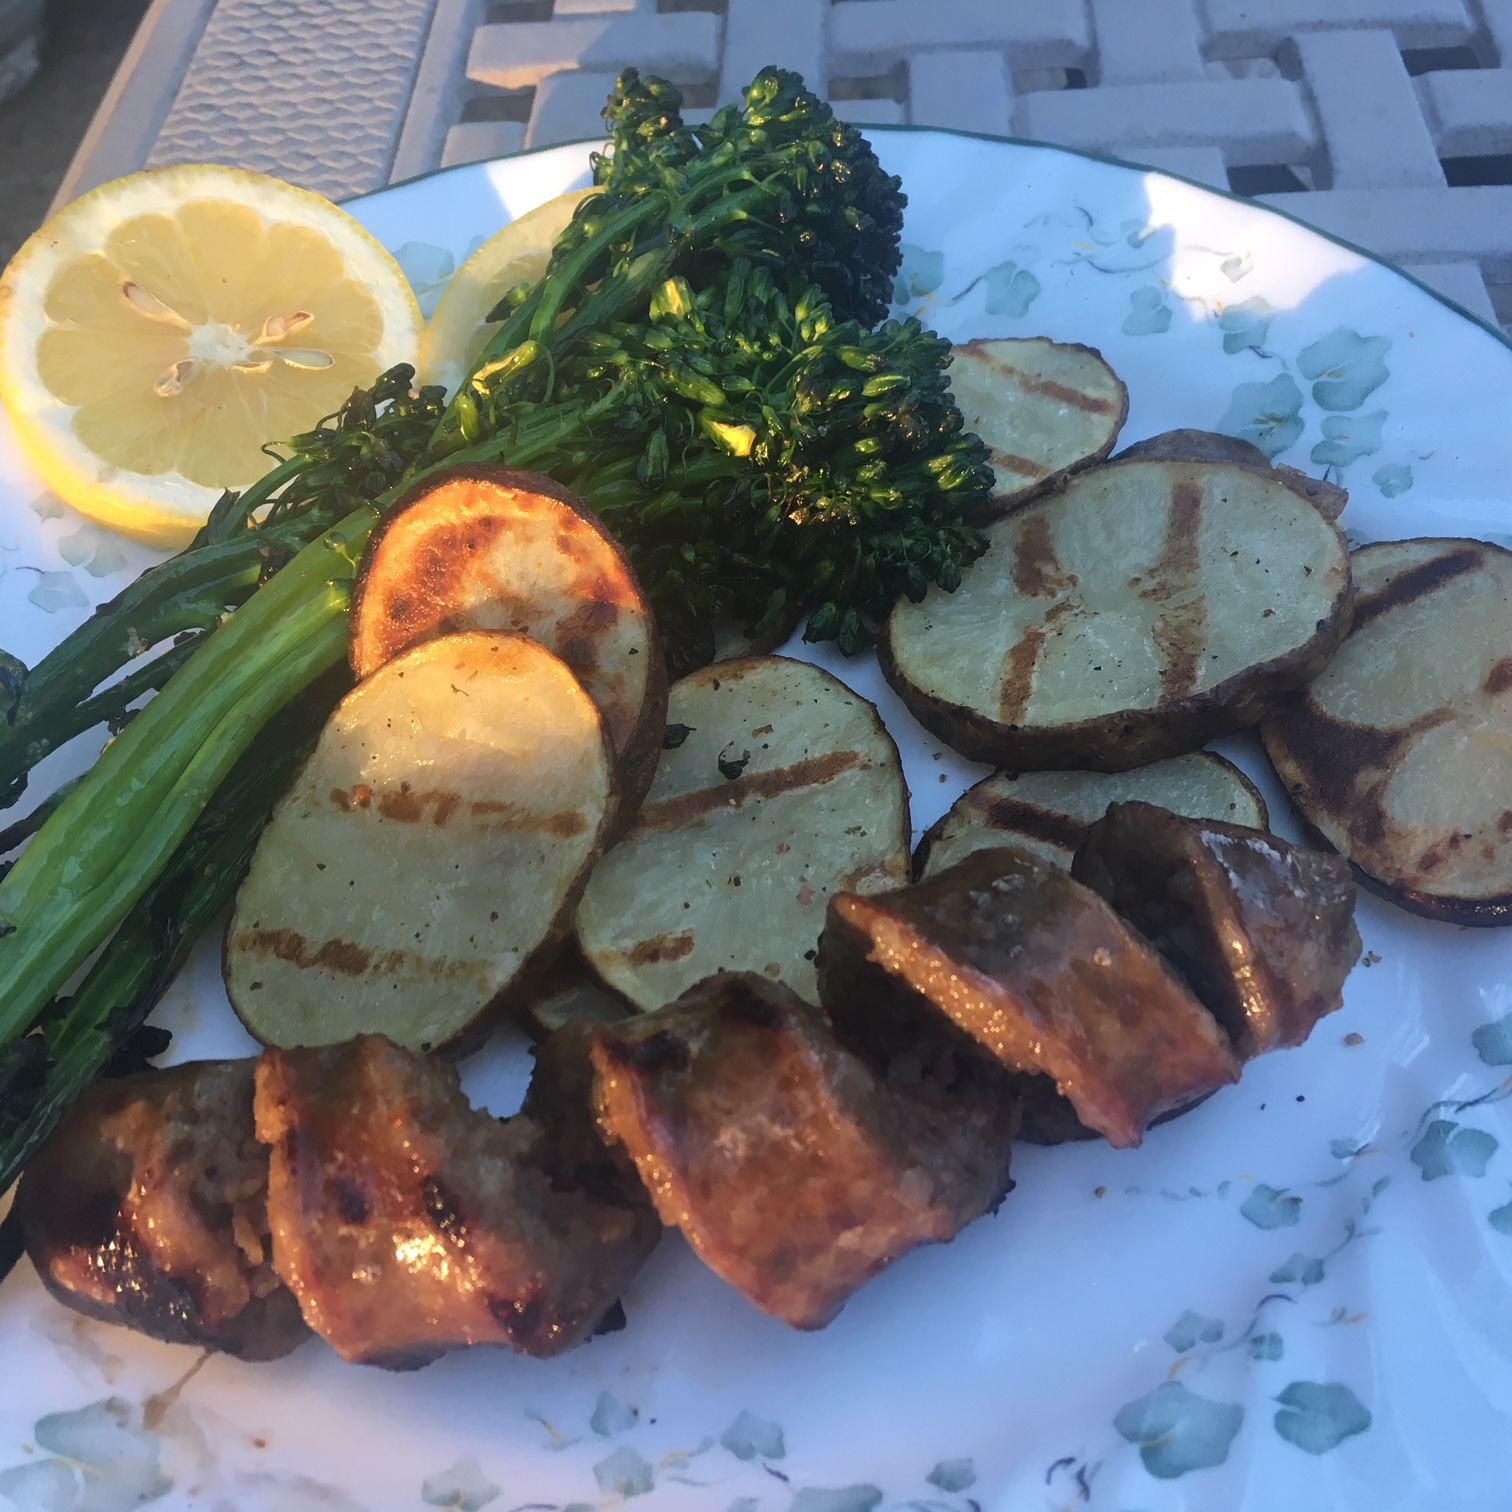 Grilled Steak with Blue Cheese, Potatoes, and Broccolini Howard